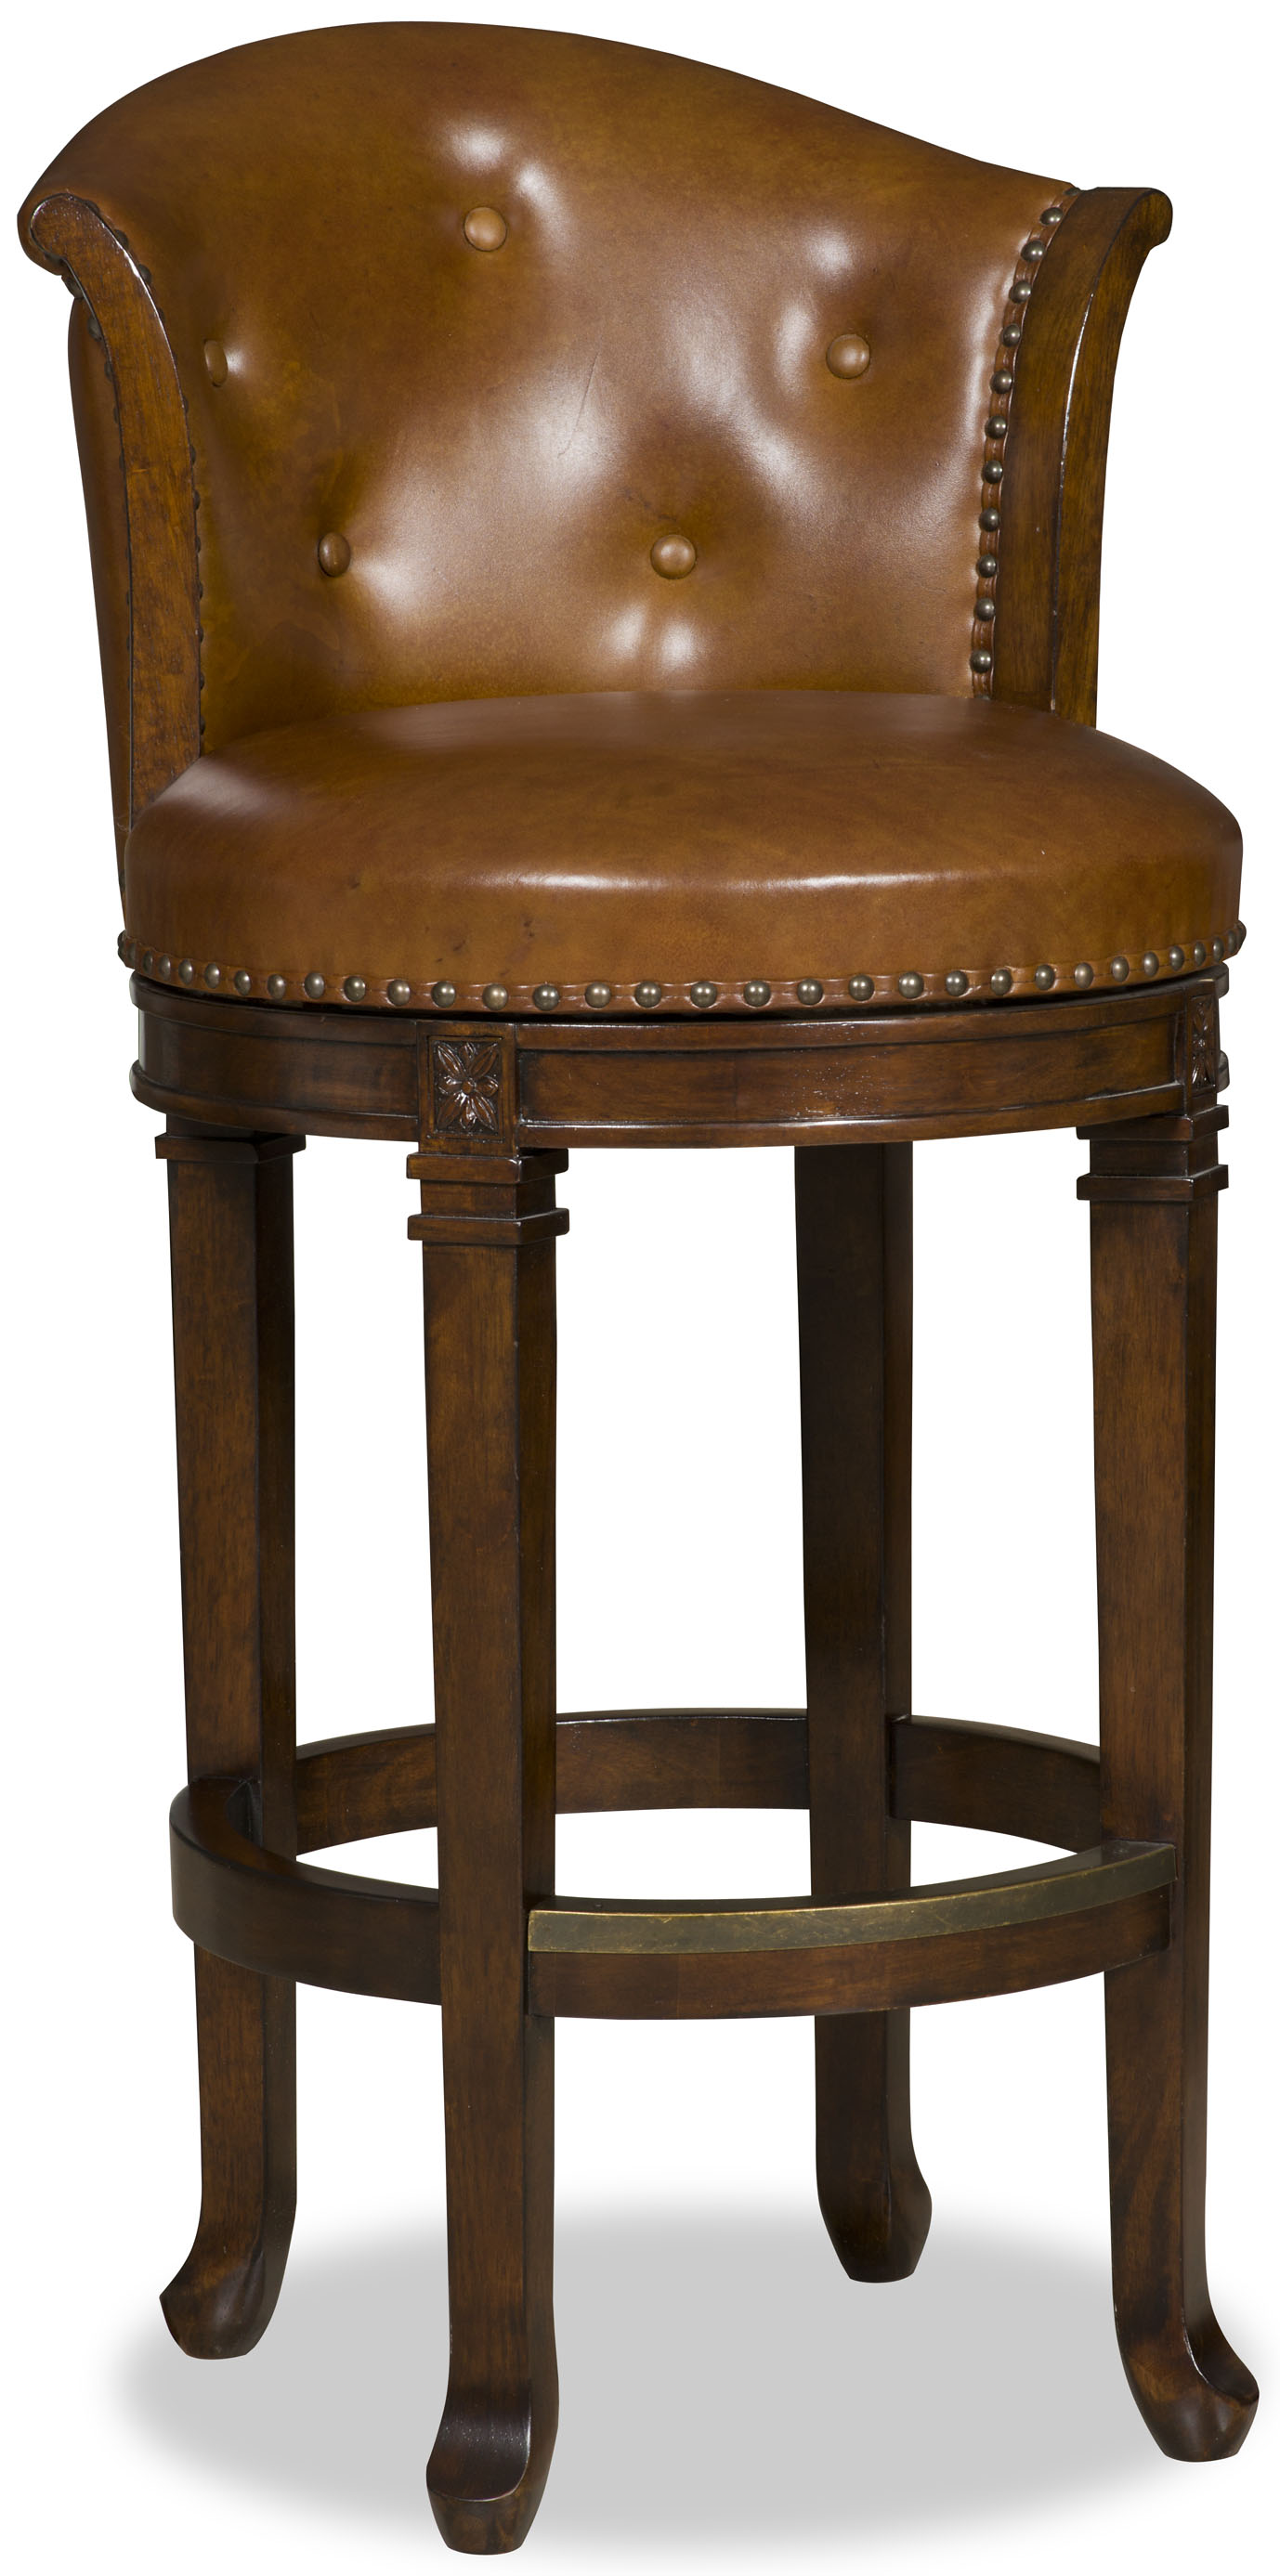 Hooker Furniture Stools Dark Manhattan - Transitional Barstool - Item Number: 300-20002